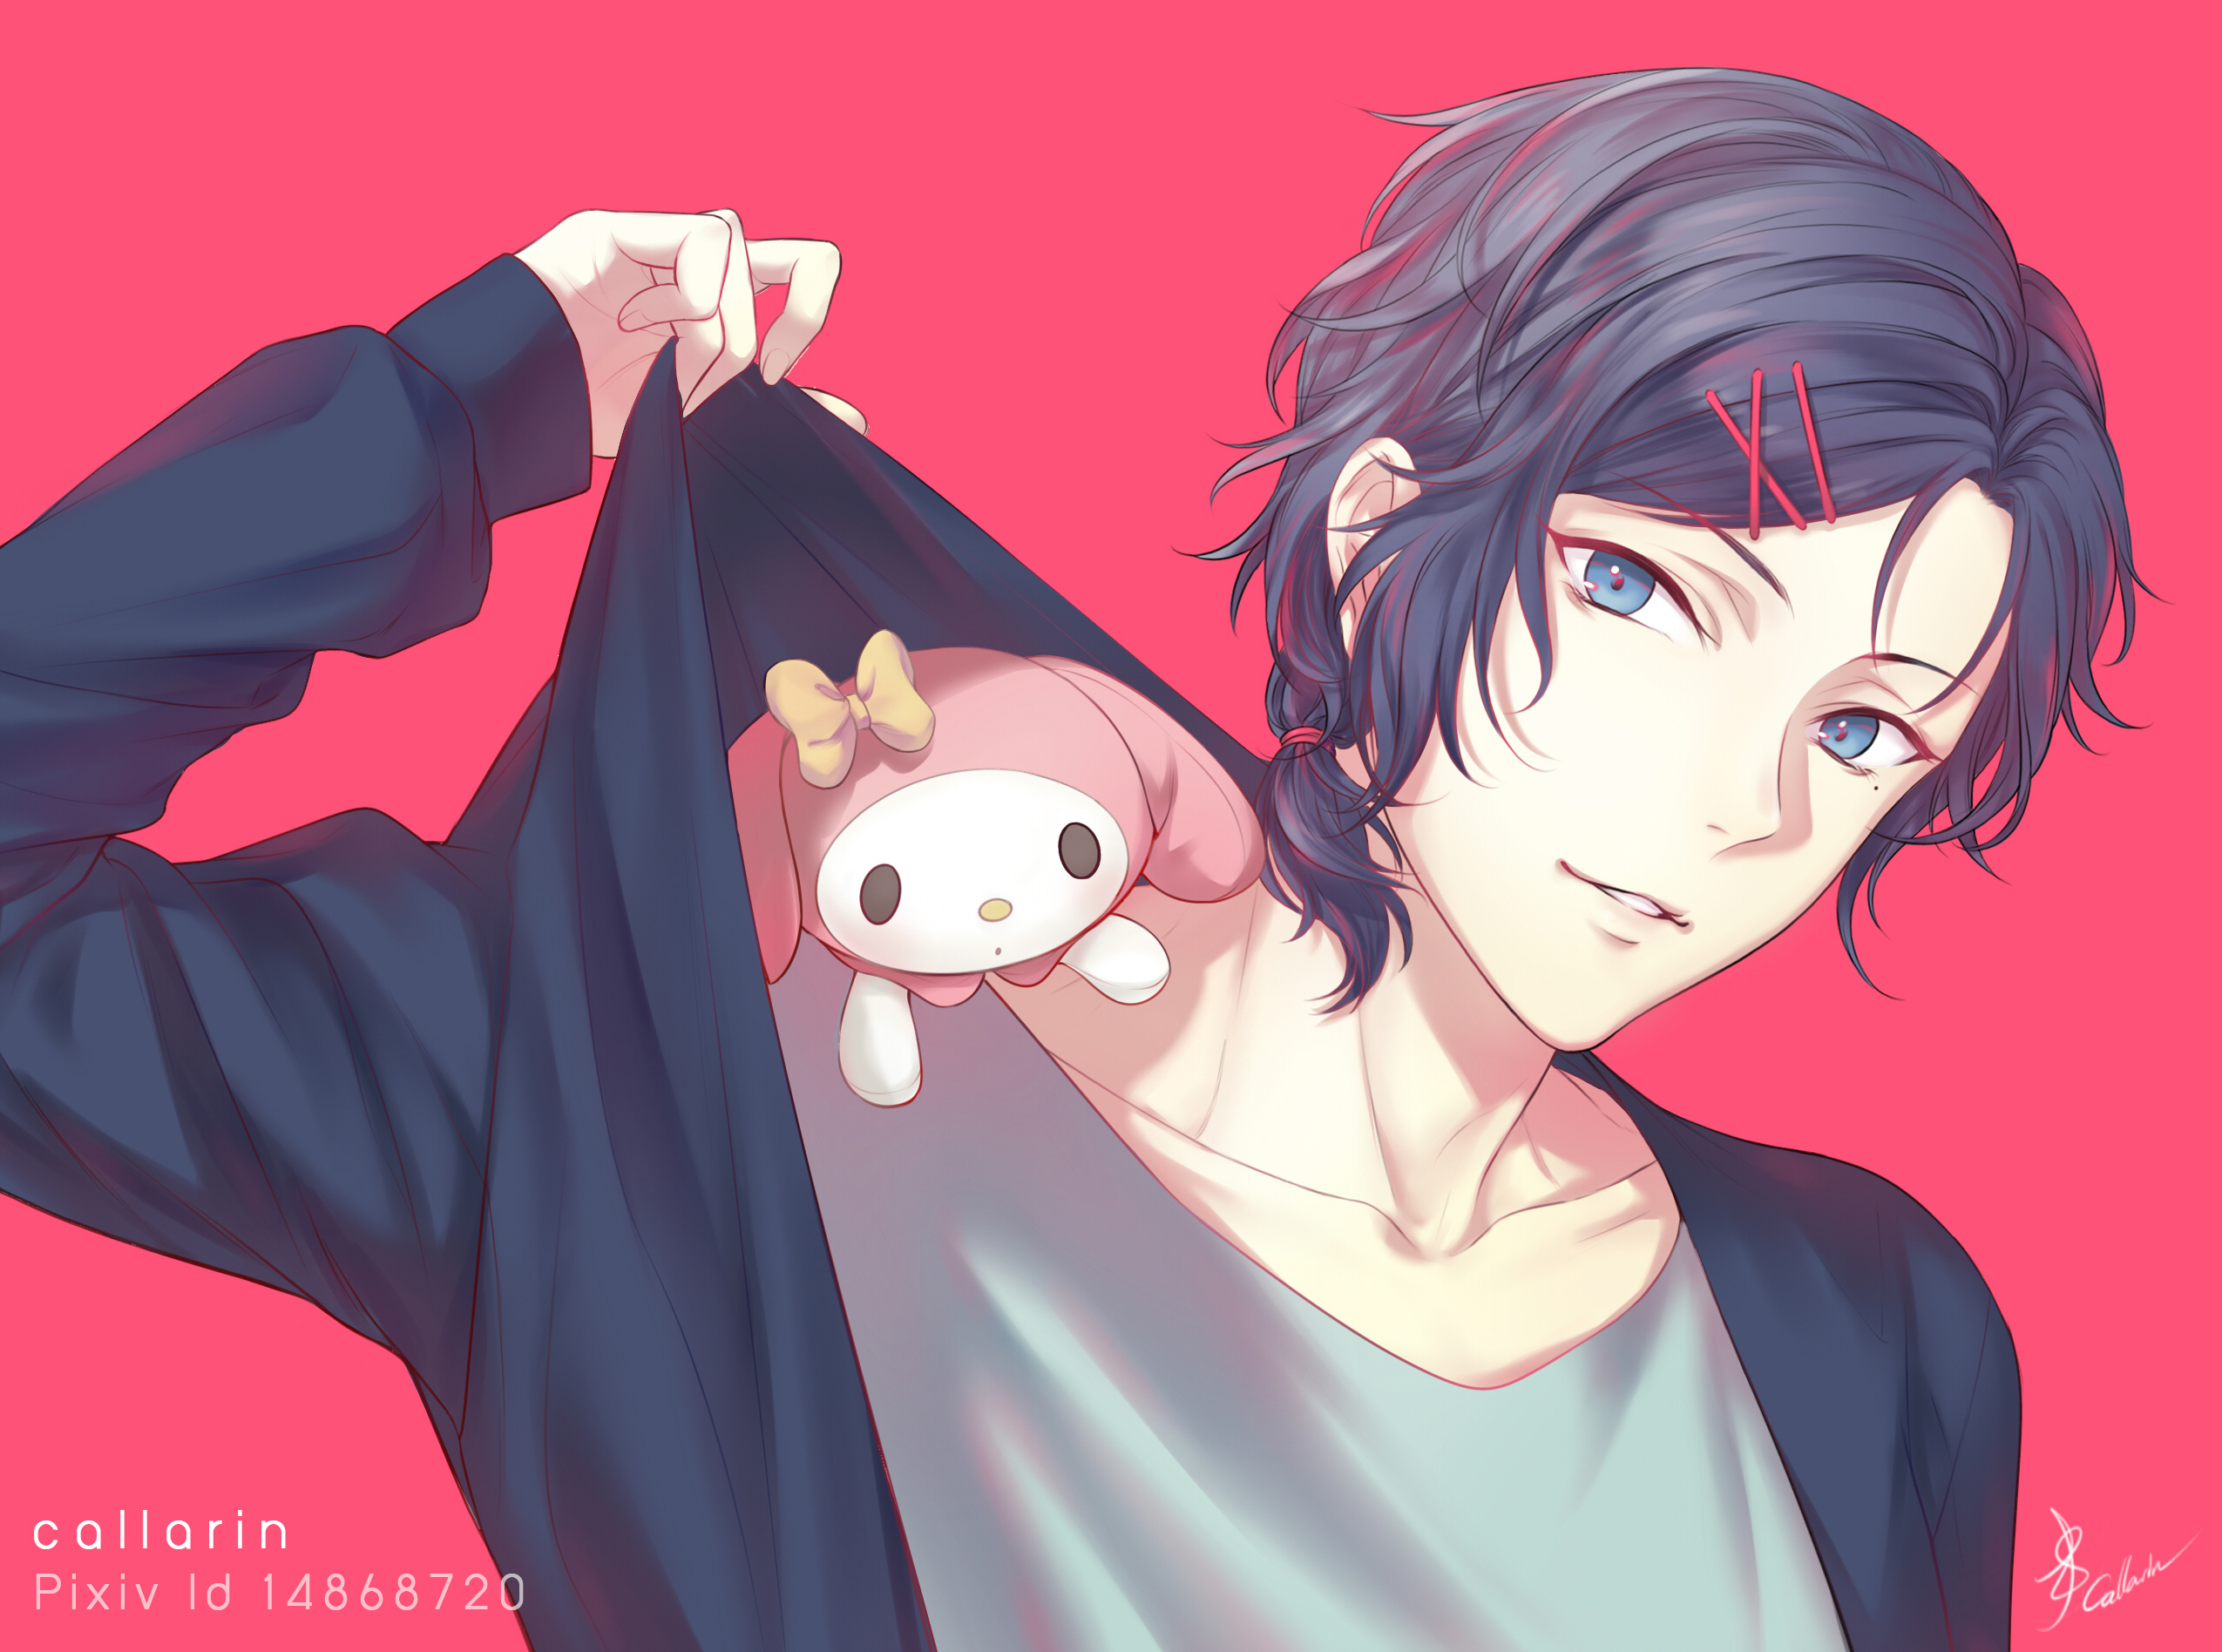 Full Hd Cute Boy Wallpaper Sanrio Danshi Zerochan Anime Image Board